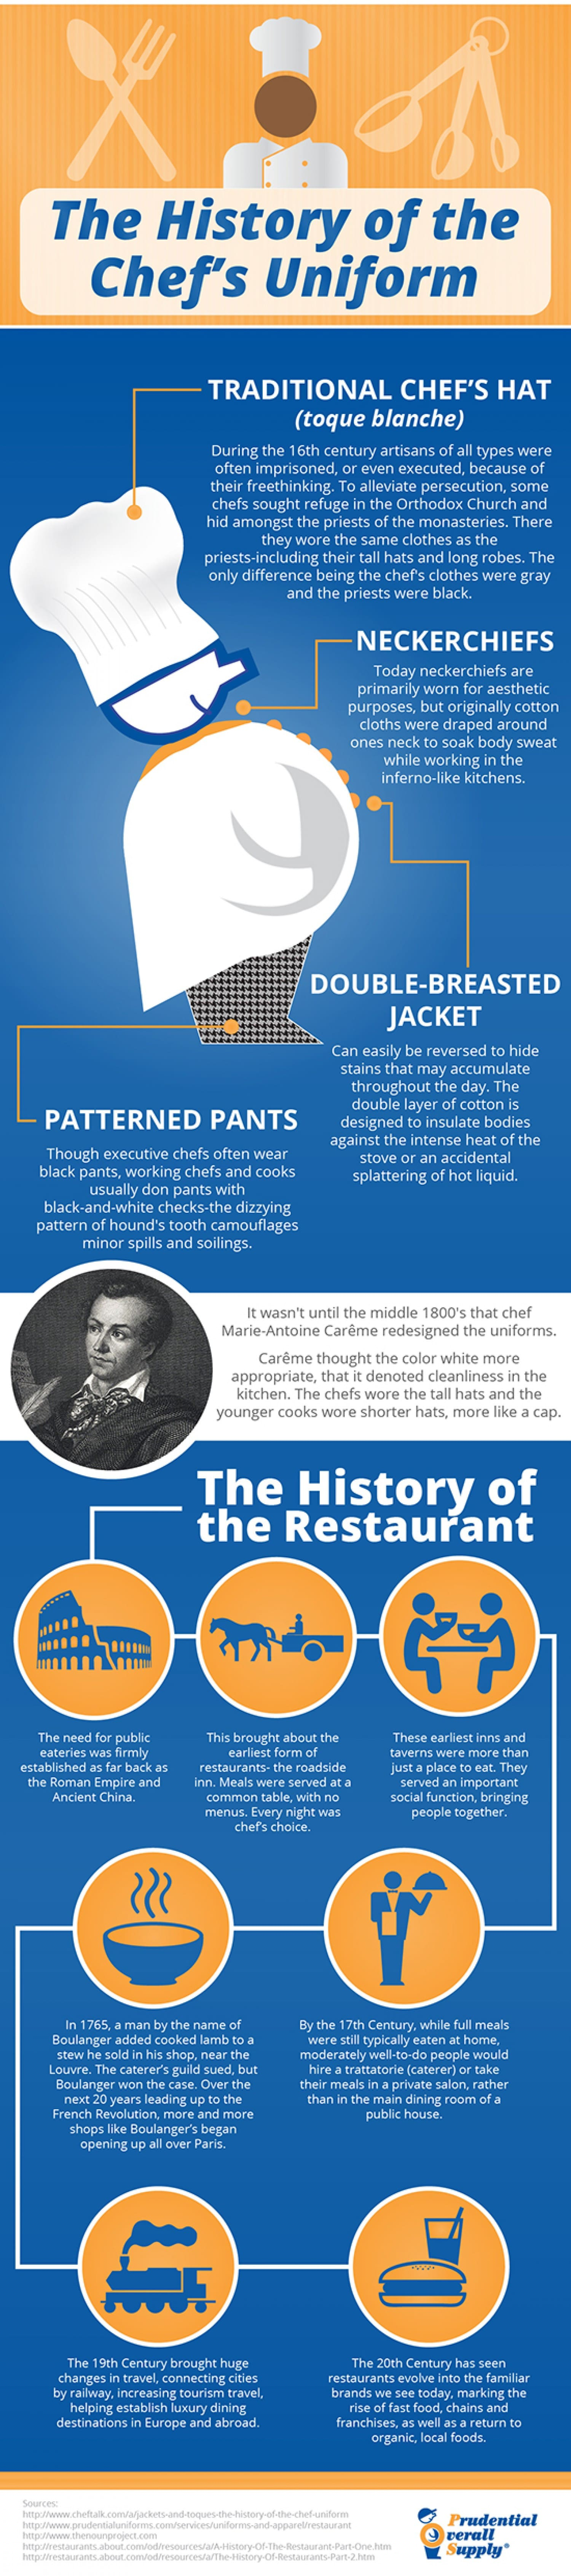 the-history-of-the-chefs-uniform_53551cdbadf1a_w1500.jpg